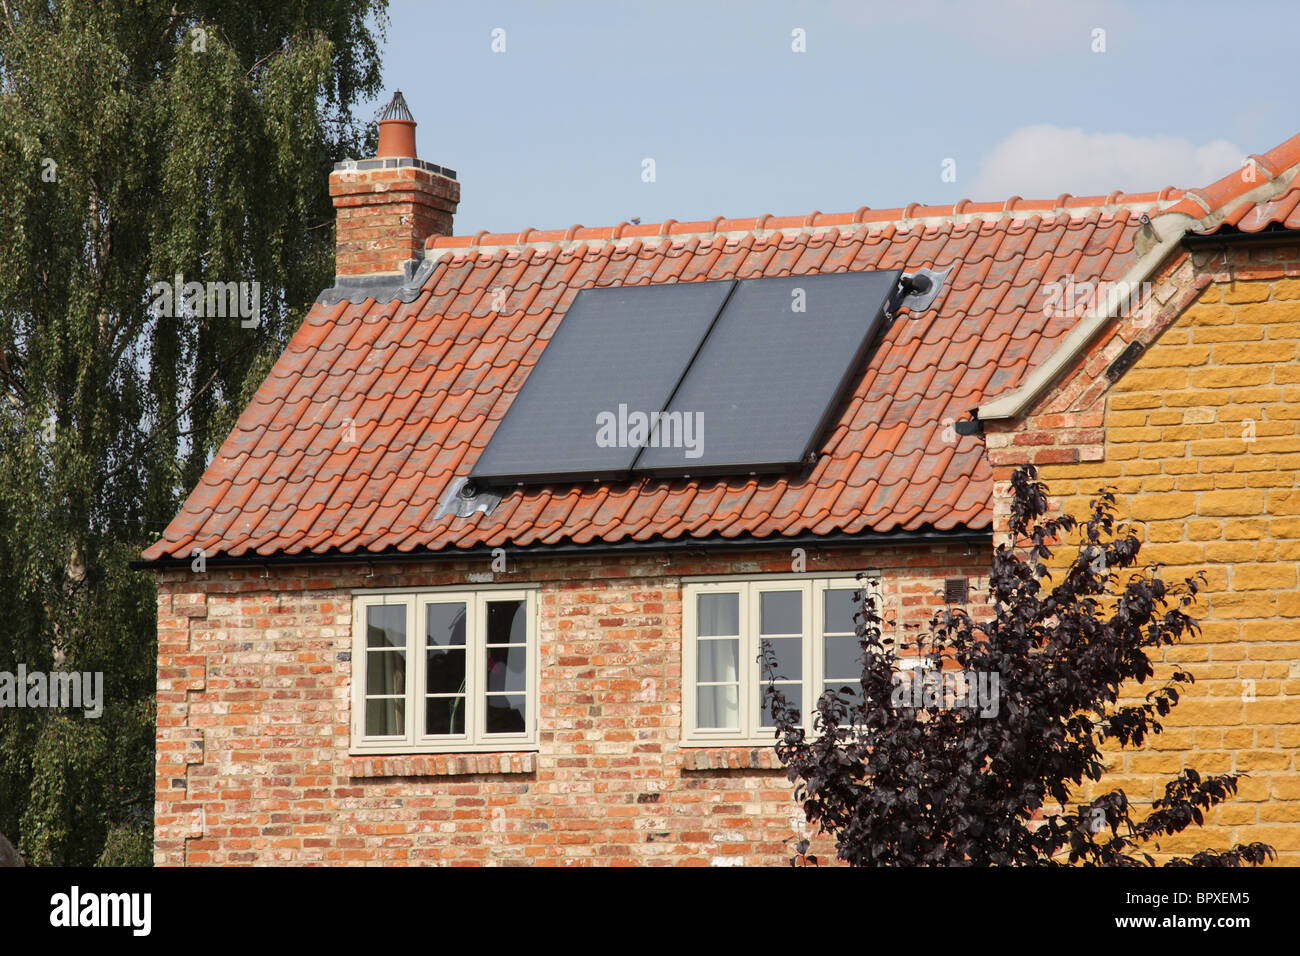 Solar panels on a house in the U.K. Stock Photo